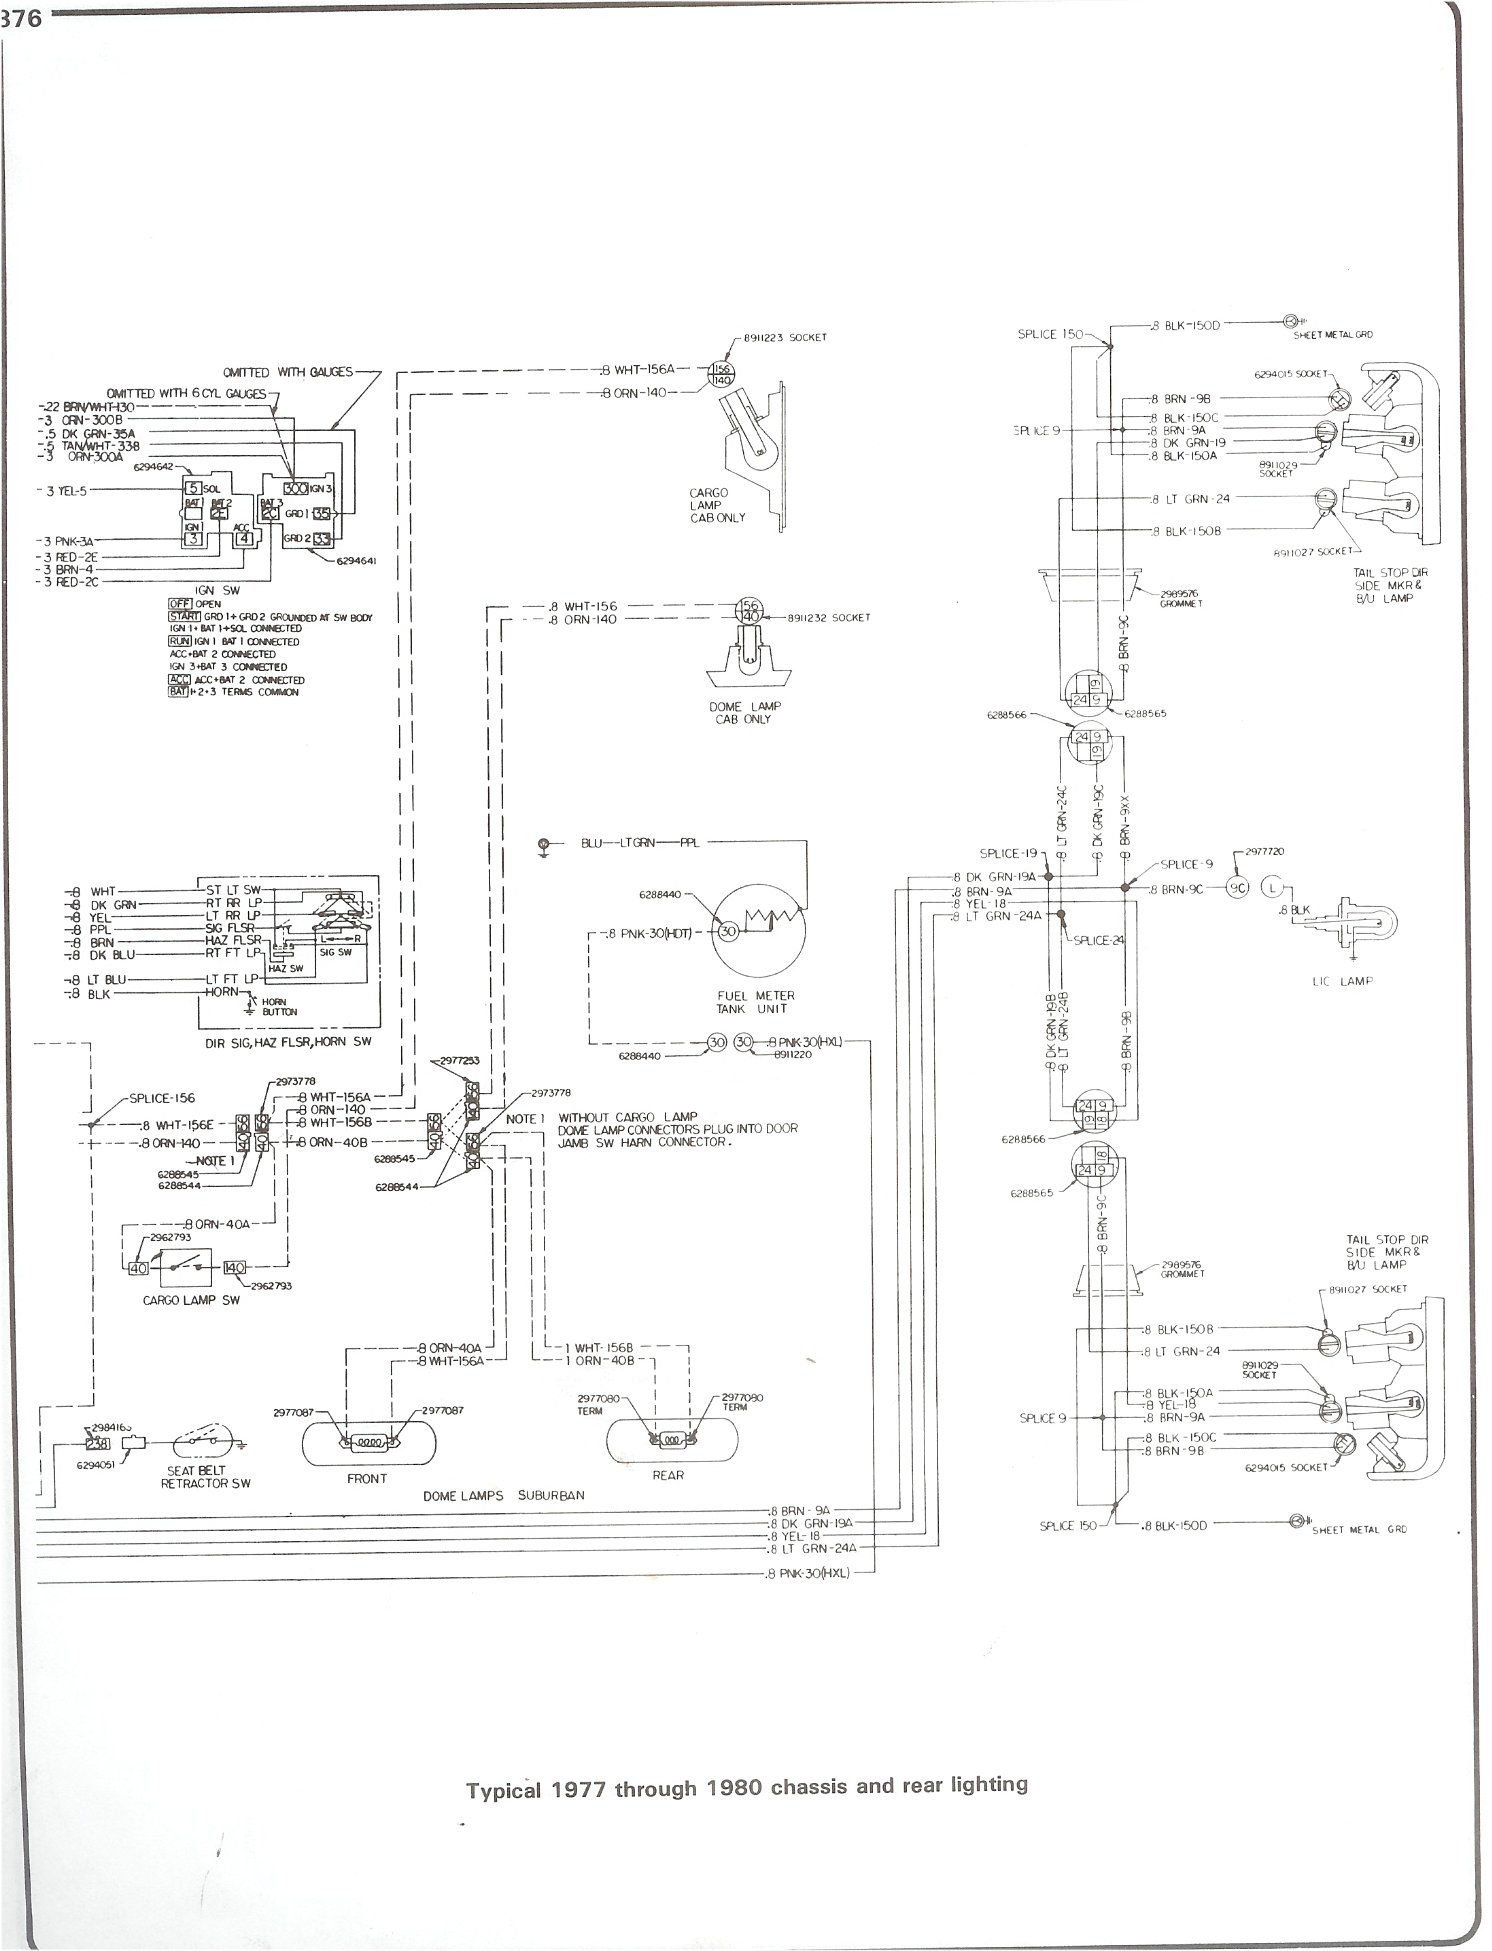 1977 Chevy Truck Radio Wiring Diagram | Wiring Schematic ... on 85 c10 wheels, 85 c10 lights, 85 c10 frame, 85 c10 accessories, 85 c10 fuel tank, 85 c10 door, 85 c10 horn, 85 c10 parts, 85 c10 engine, 85 c10 suspension,